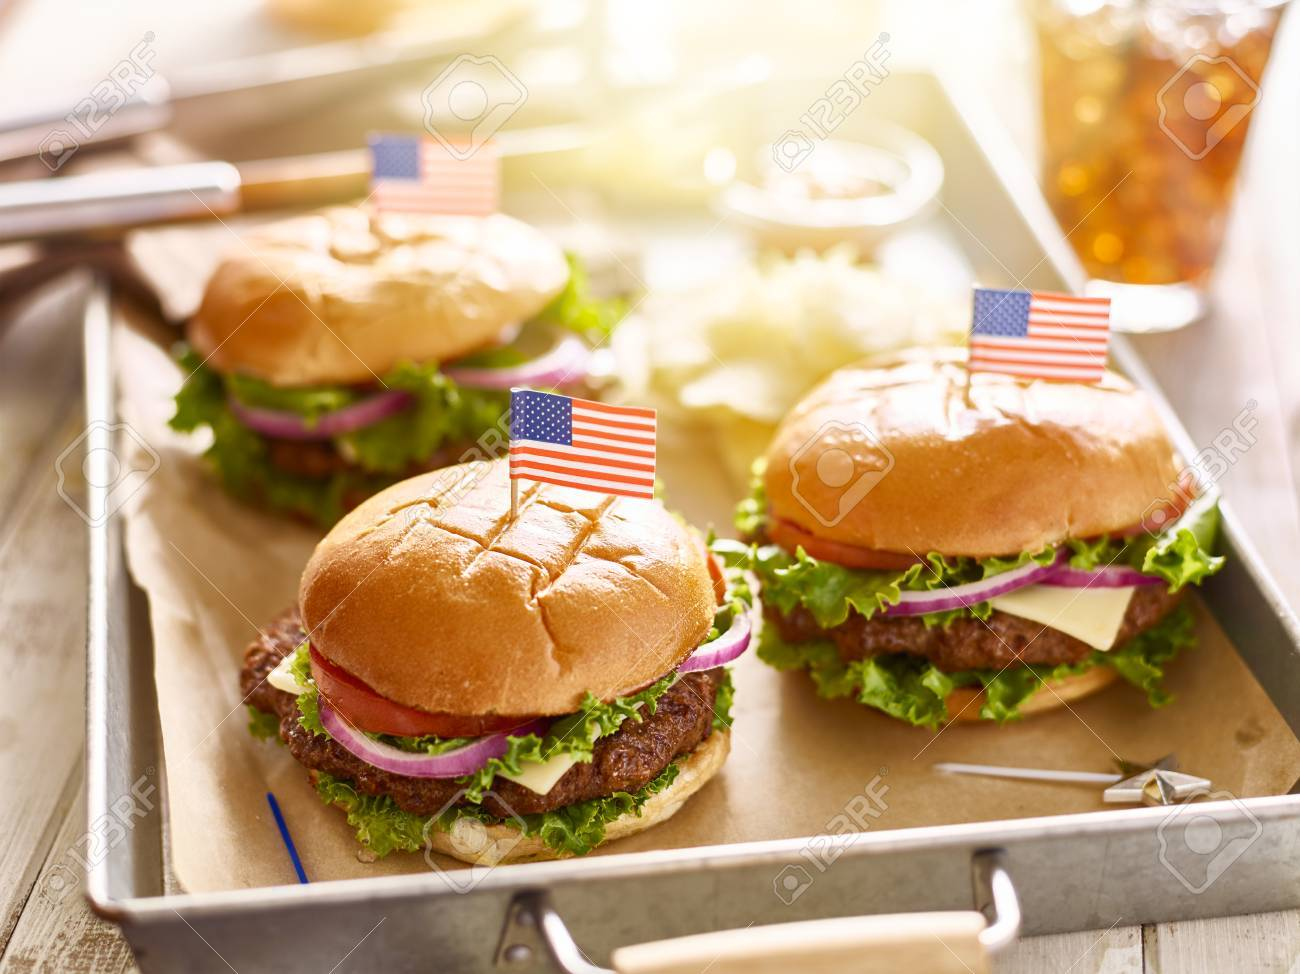 cheese burgers on tray with flags in 4th of july theme - 57890863